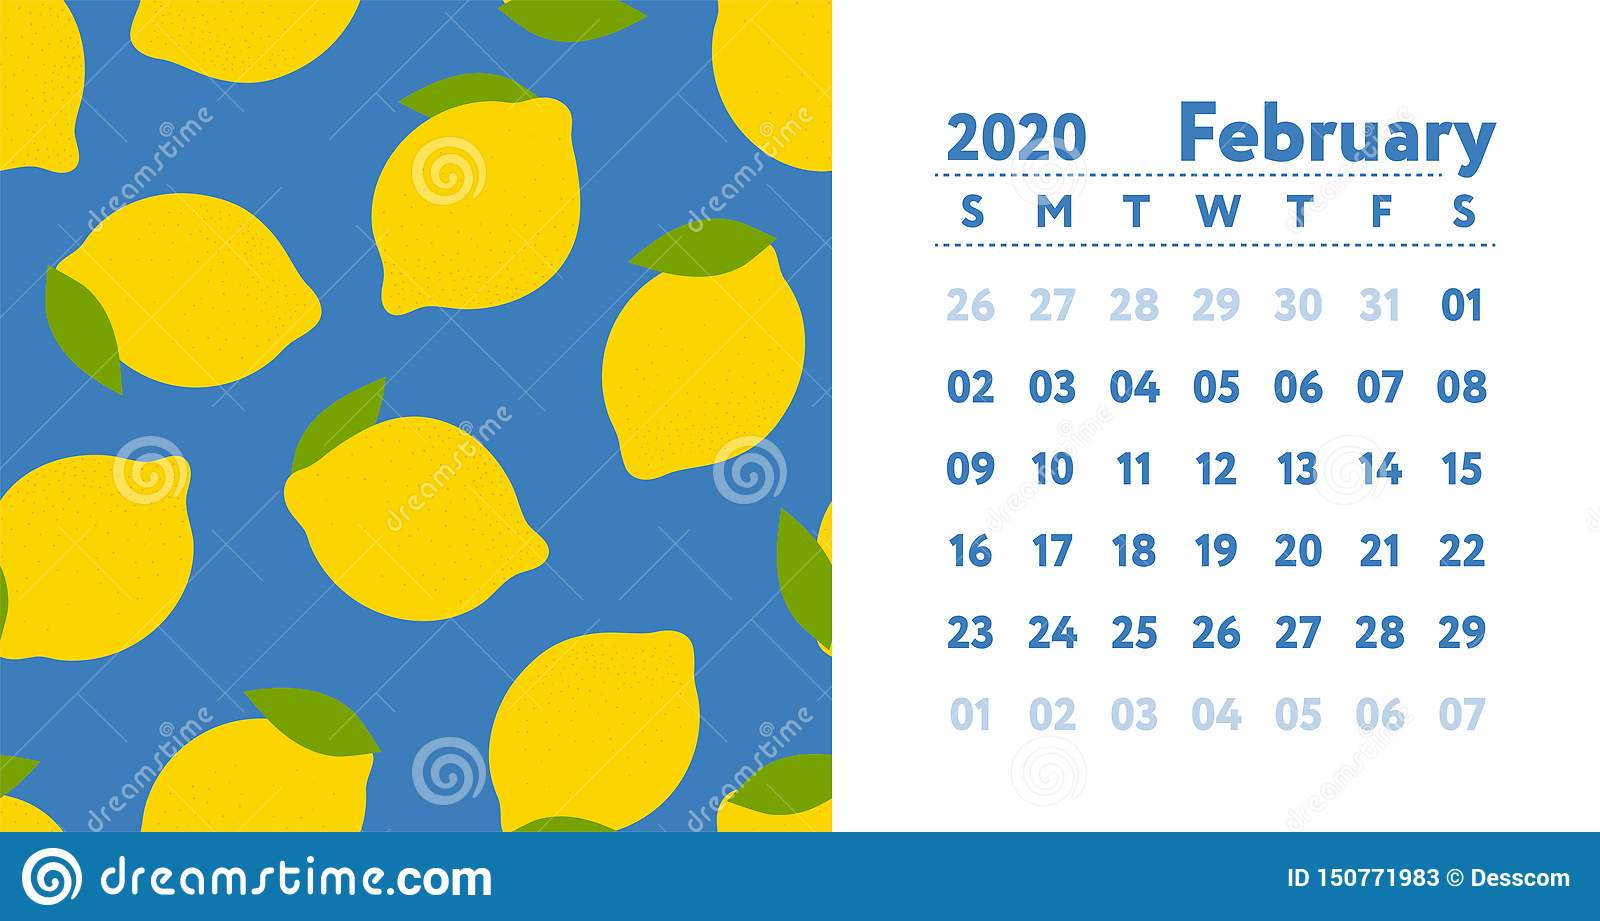 Decorative February 2020 Calendar For Message Boards Calendar 2020. February Month. Vector English Wall Calender. Lemon